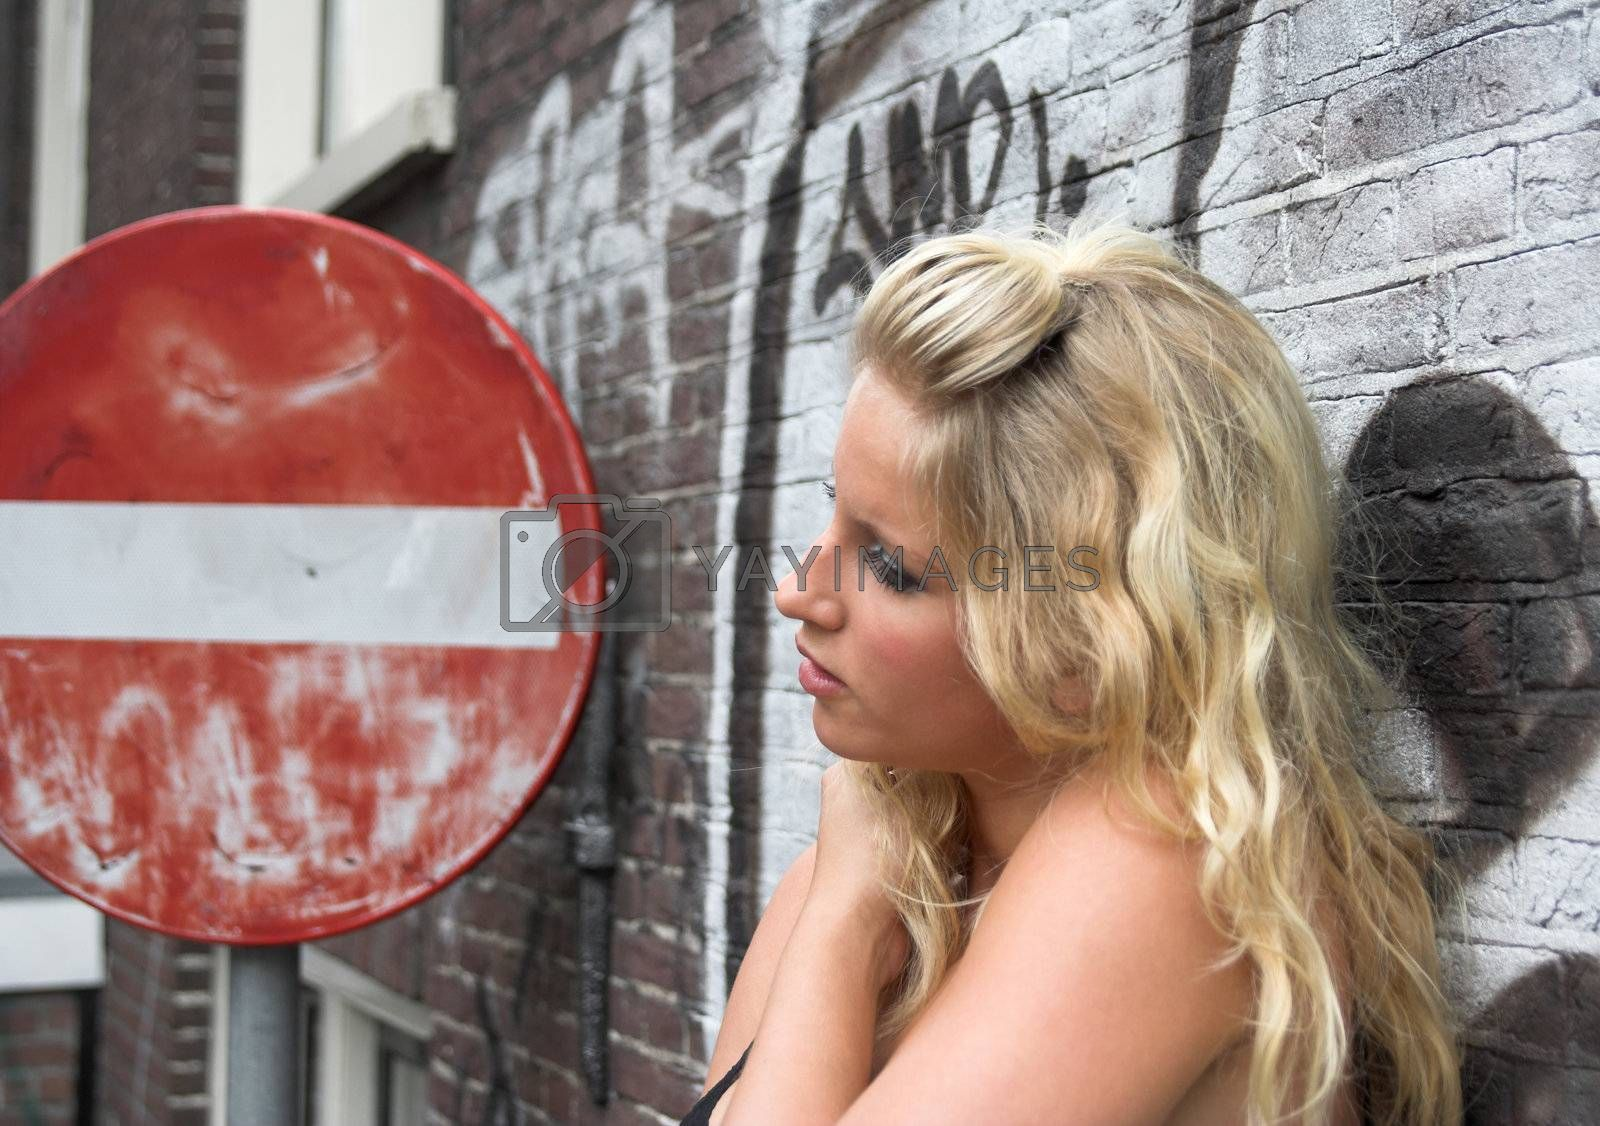 Attractive blonde standing next to a red road sign by MikLav